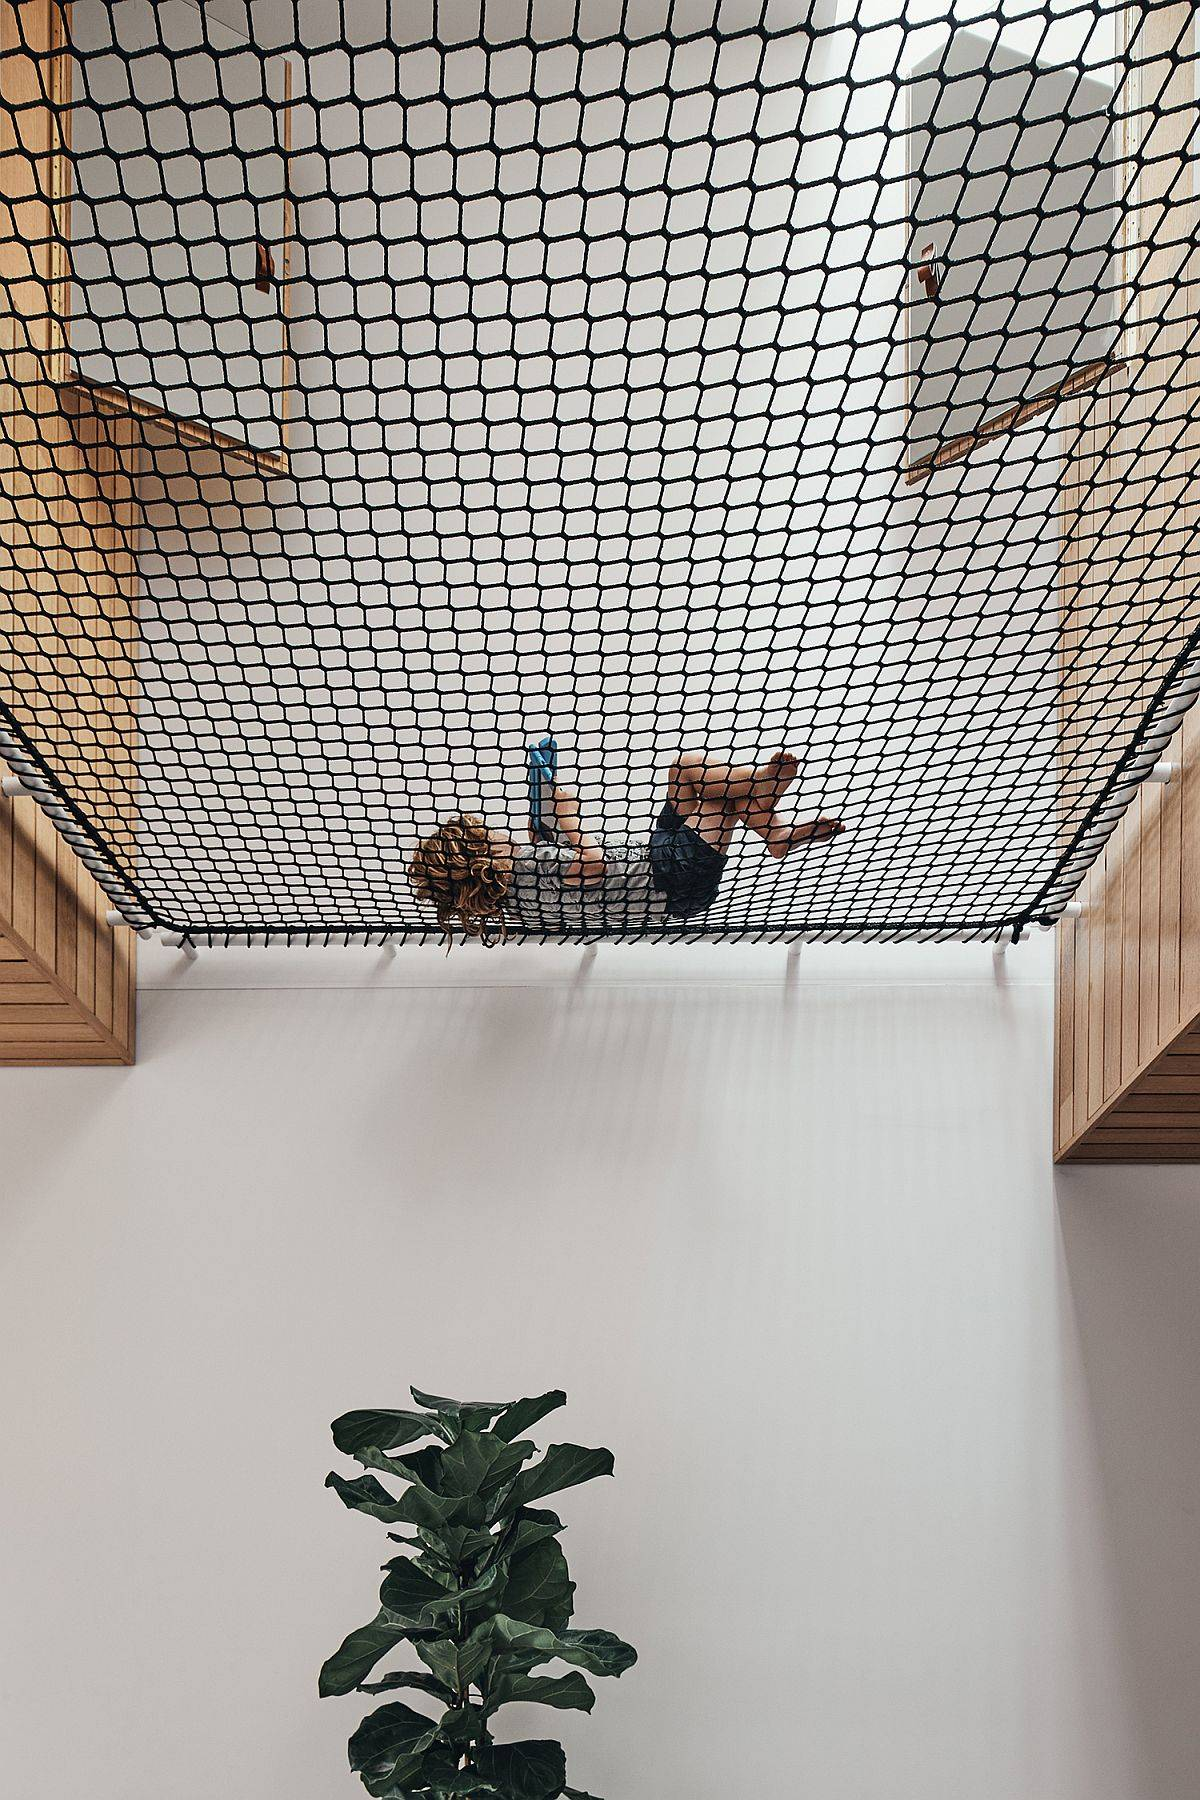 Central void of the home with a net on the upper level that helps everyone rest and relax